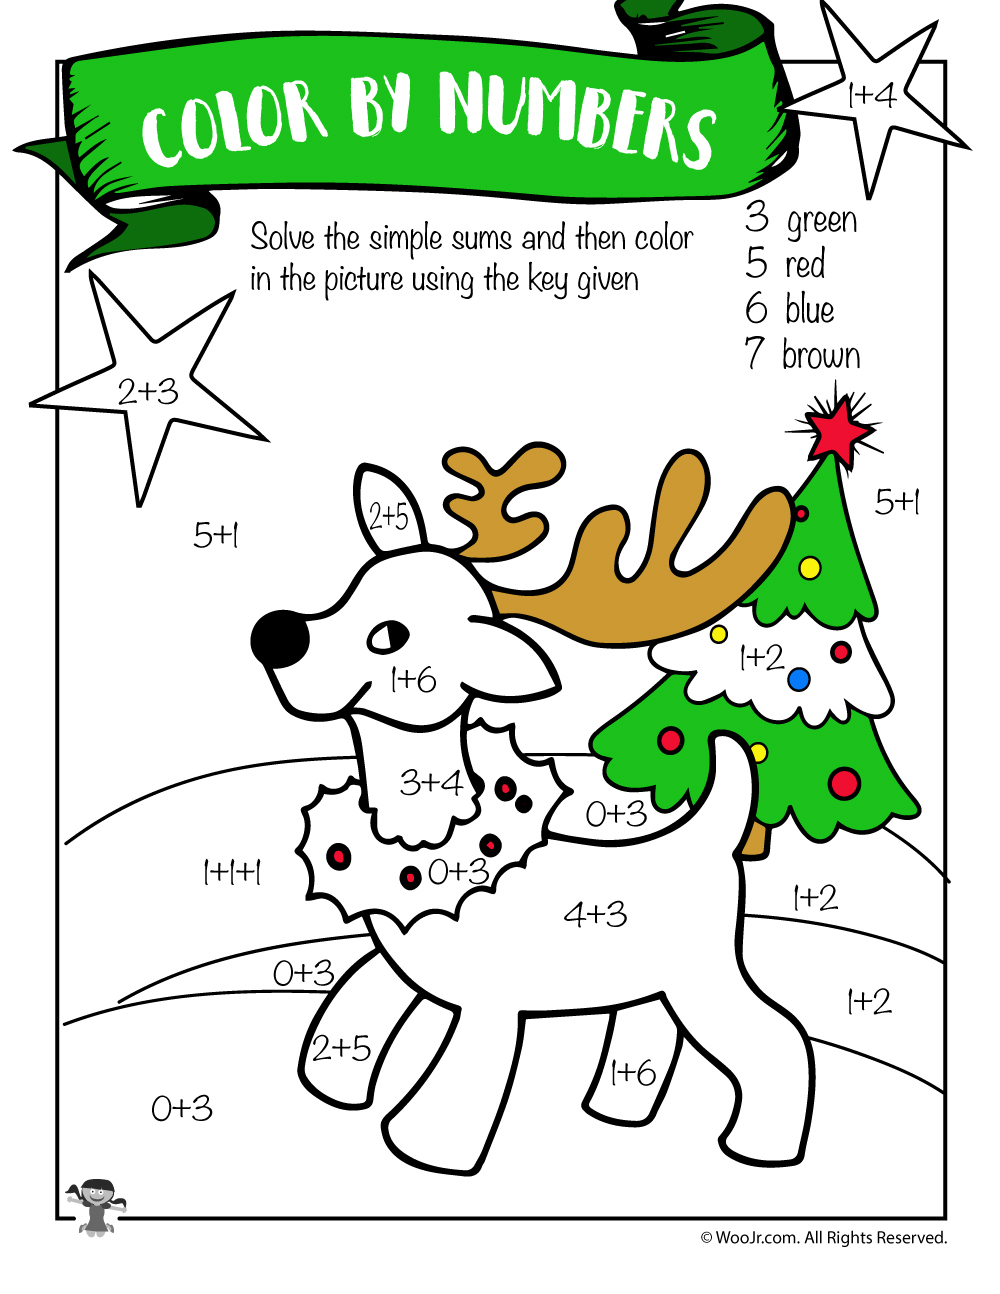 Free Printable Christmas Math Worksheets: Pre K, 1St Grade & 2Nd - Free Printable Math Coloring Worksheets For 2Nd Grade